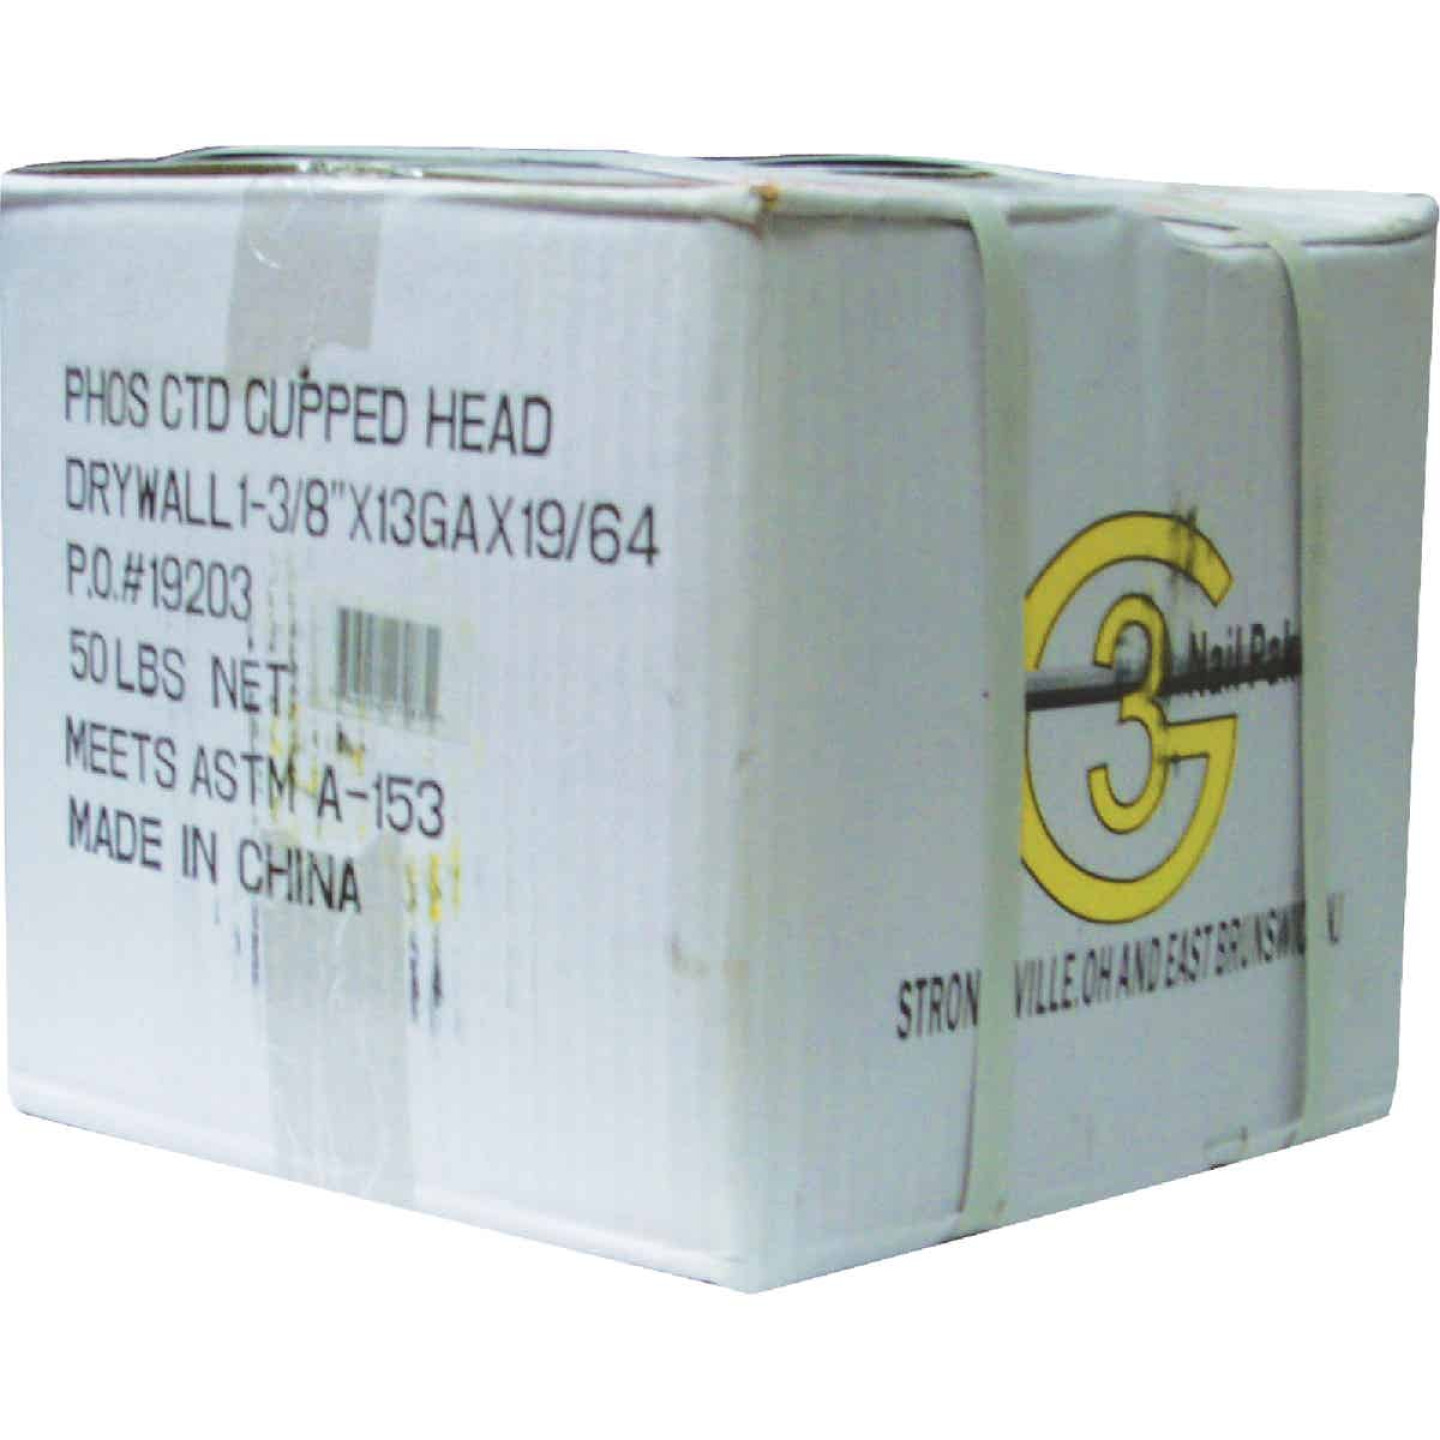 Grip-Rite 1-3/8 In. 12-1/2 ga Phosphate Coated Drywall Nails (9600 Ct., 30 Lb.) Image 2